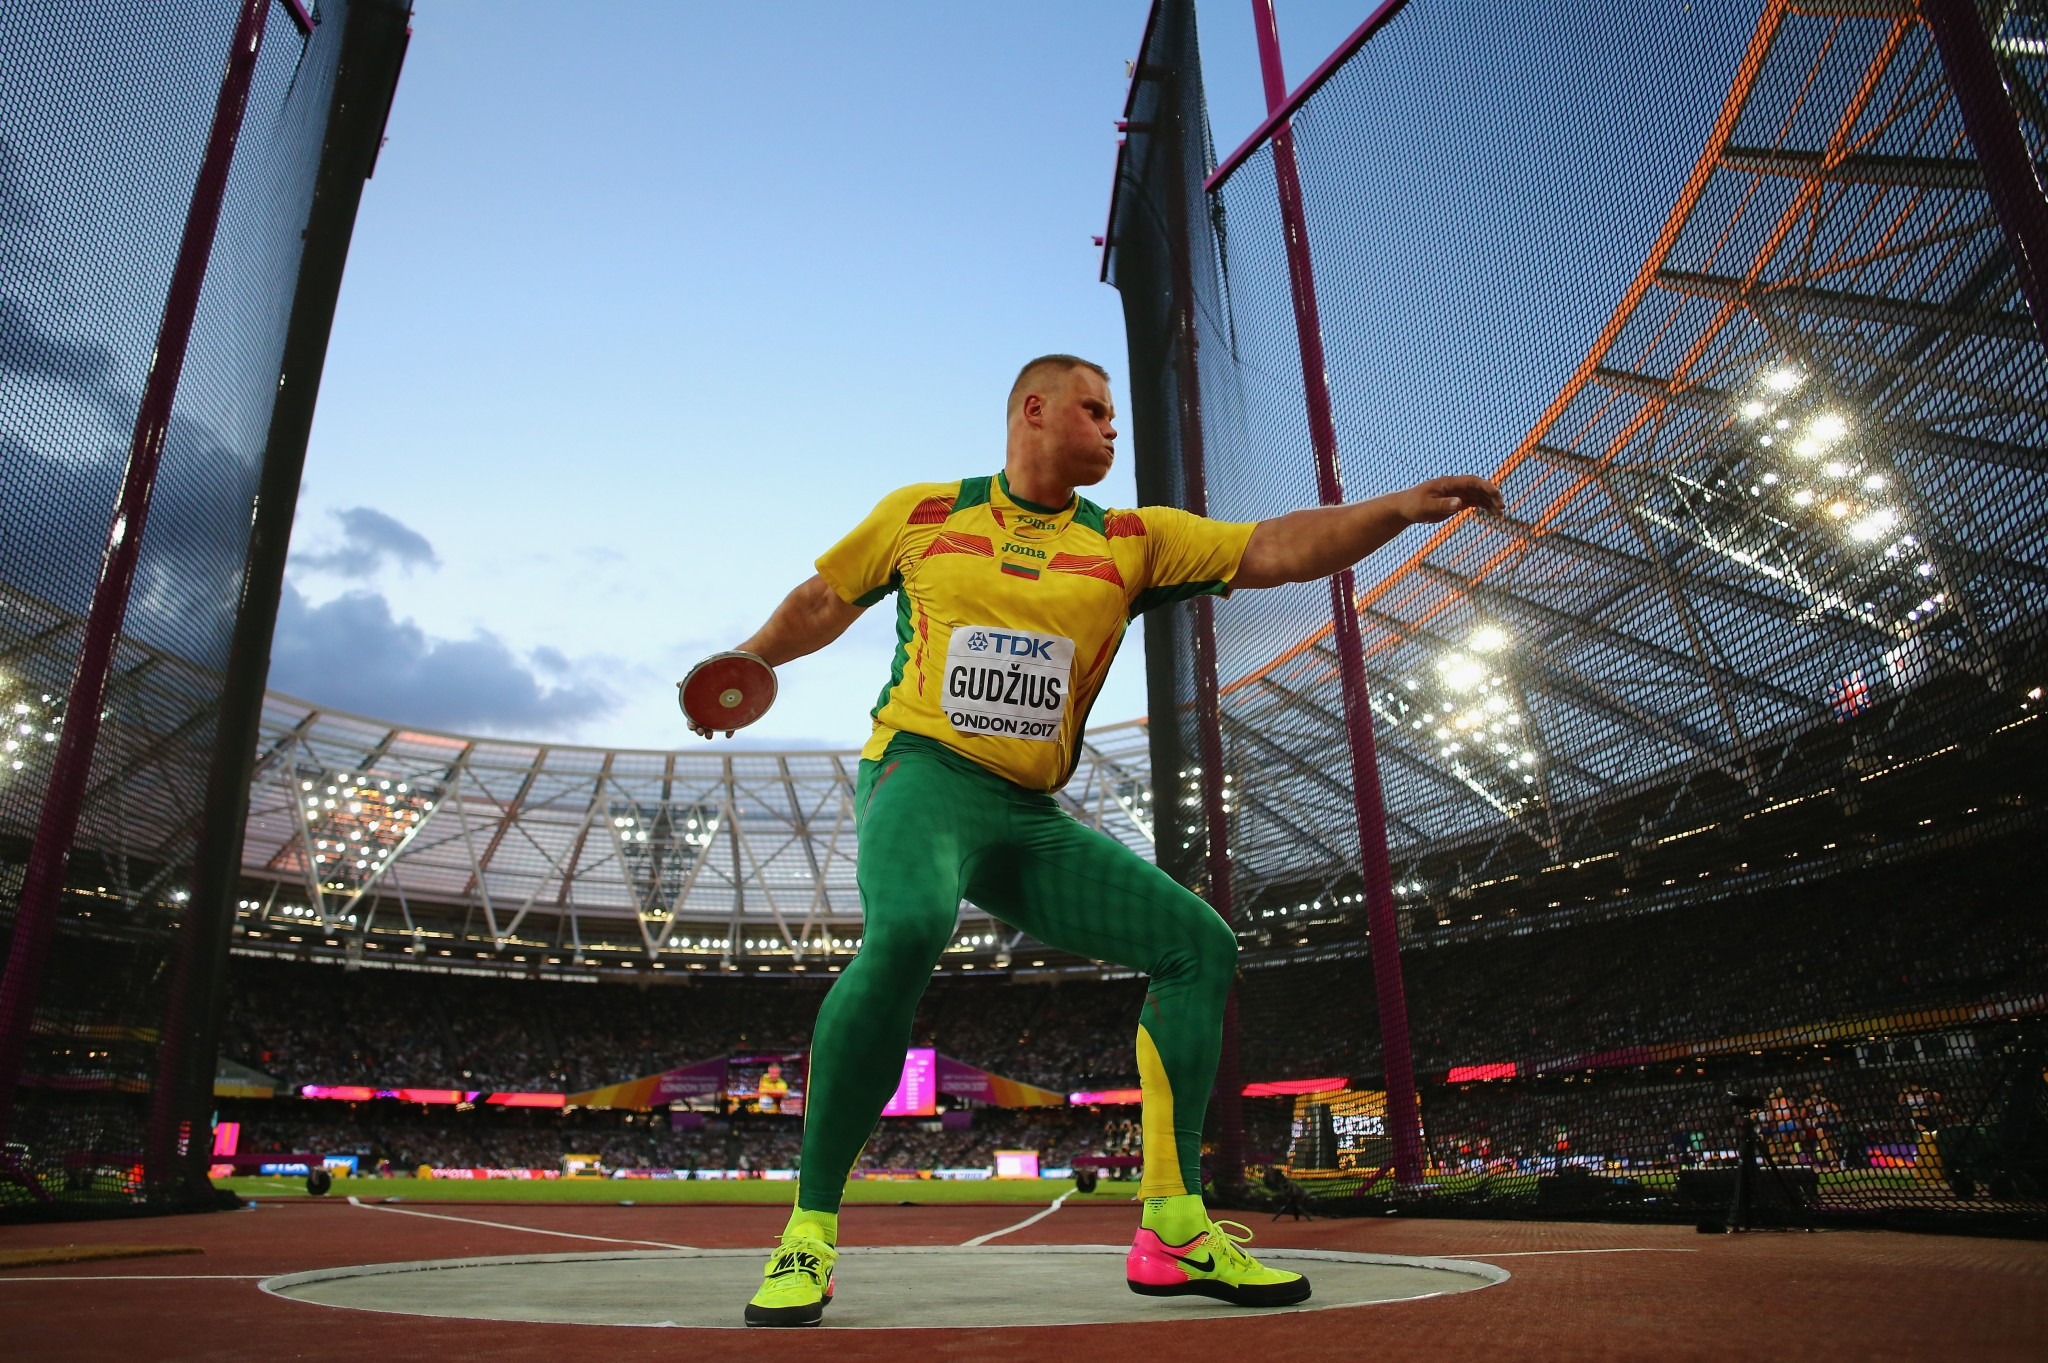 Lithuana's Andrius Gudzius won the discus by two centimetres ©Getty Images